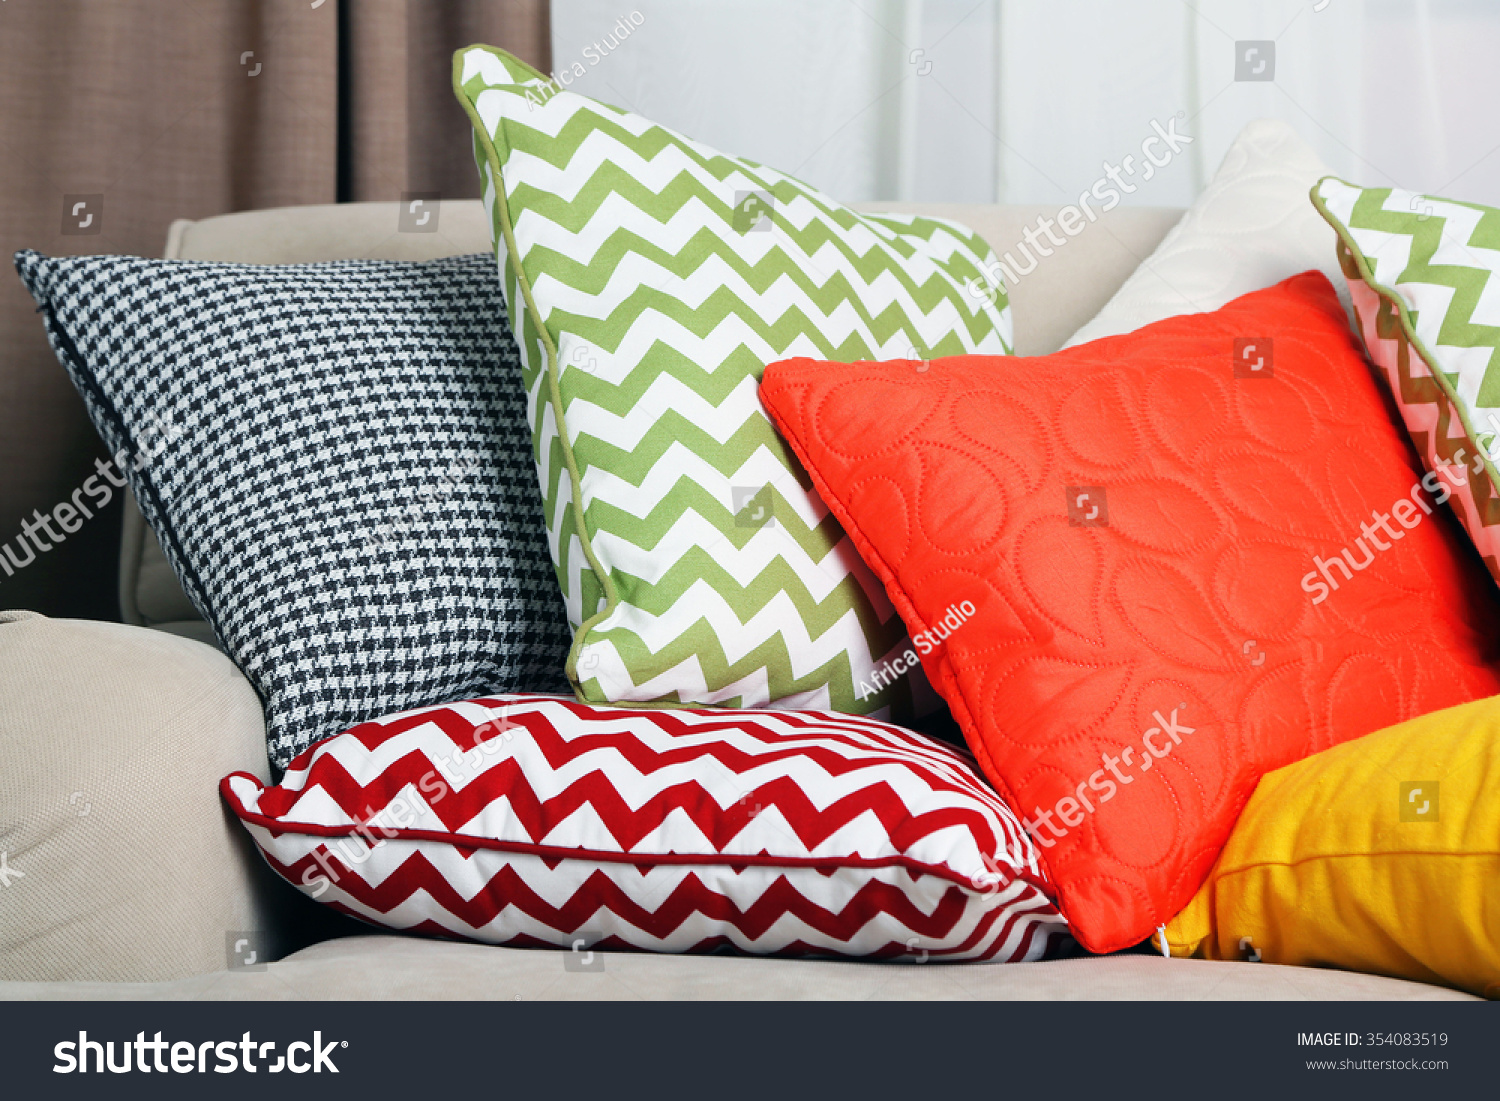 bright colored sofa pillows bristol warehouse with colorful in room stock photo 354083519